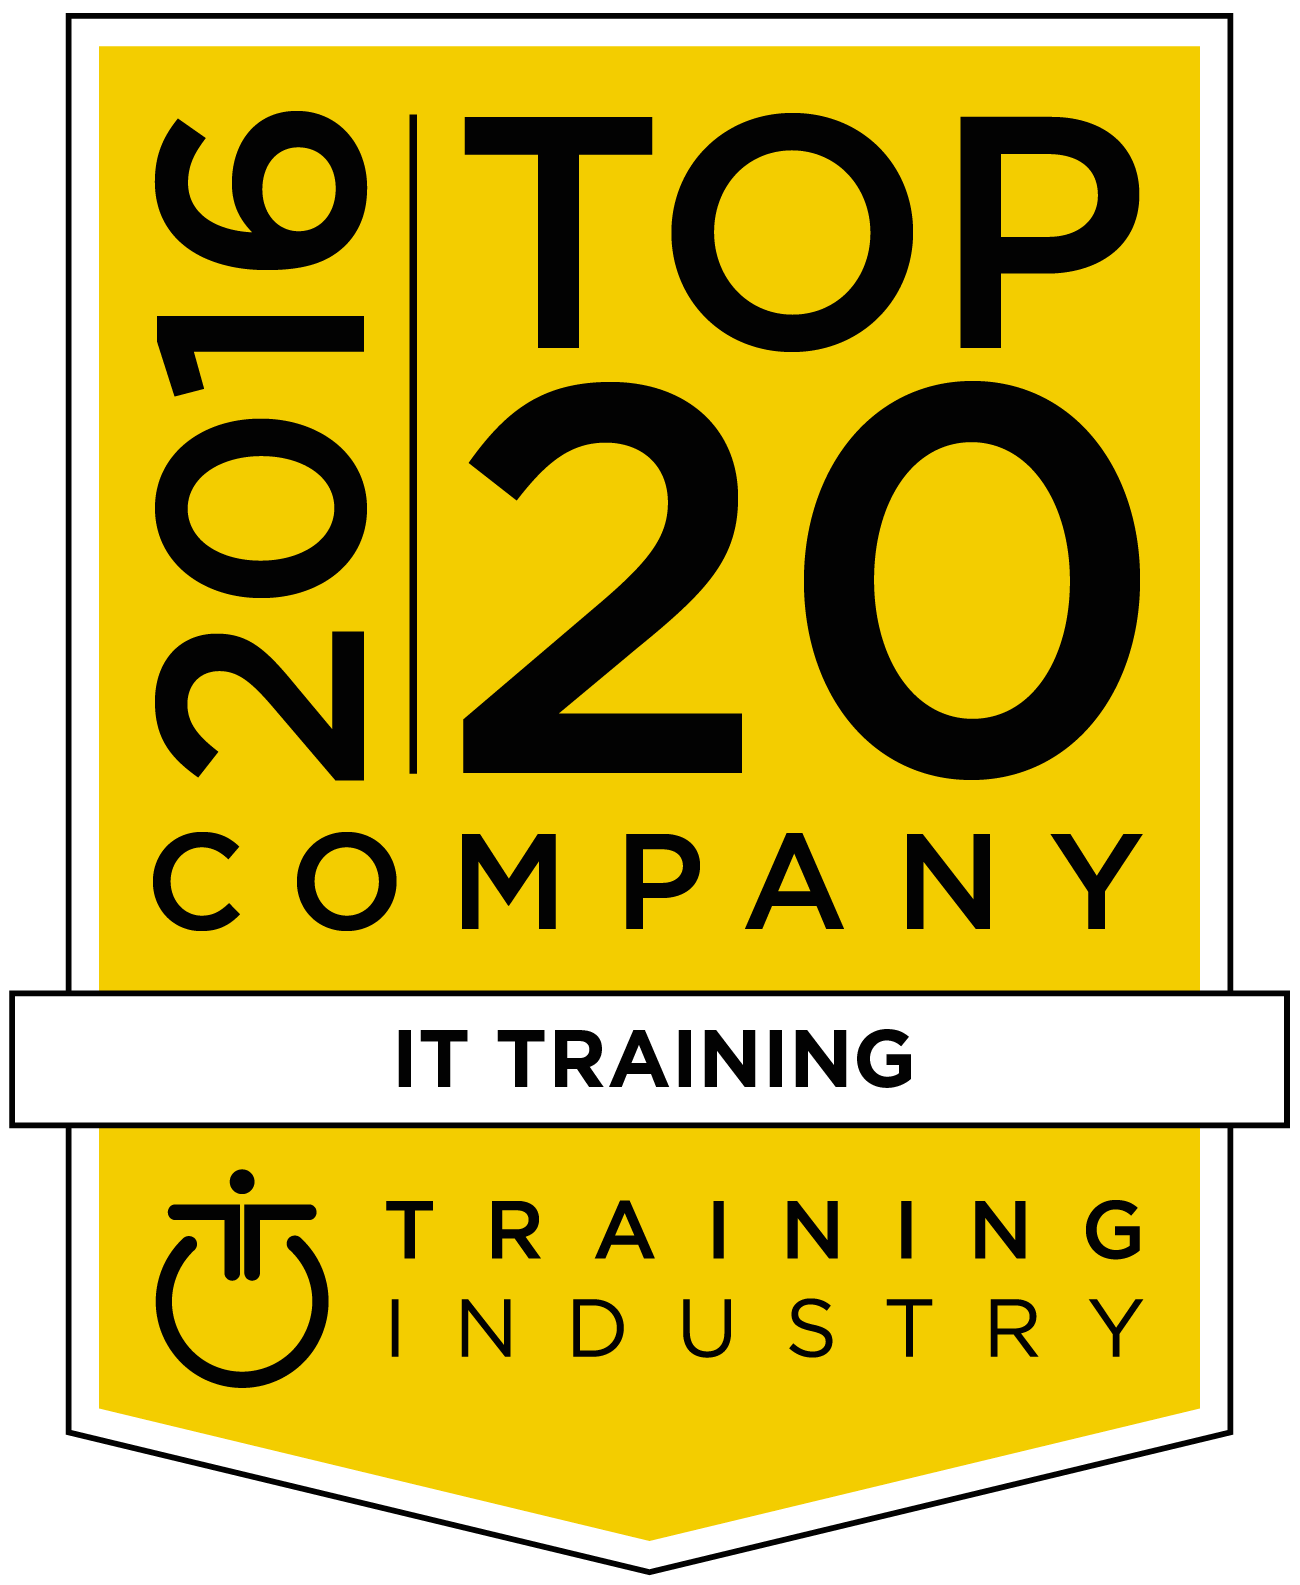 Top 20 Company IT Training from Training Industry